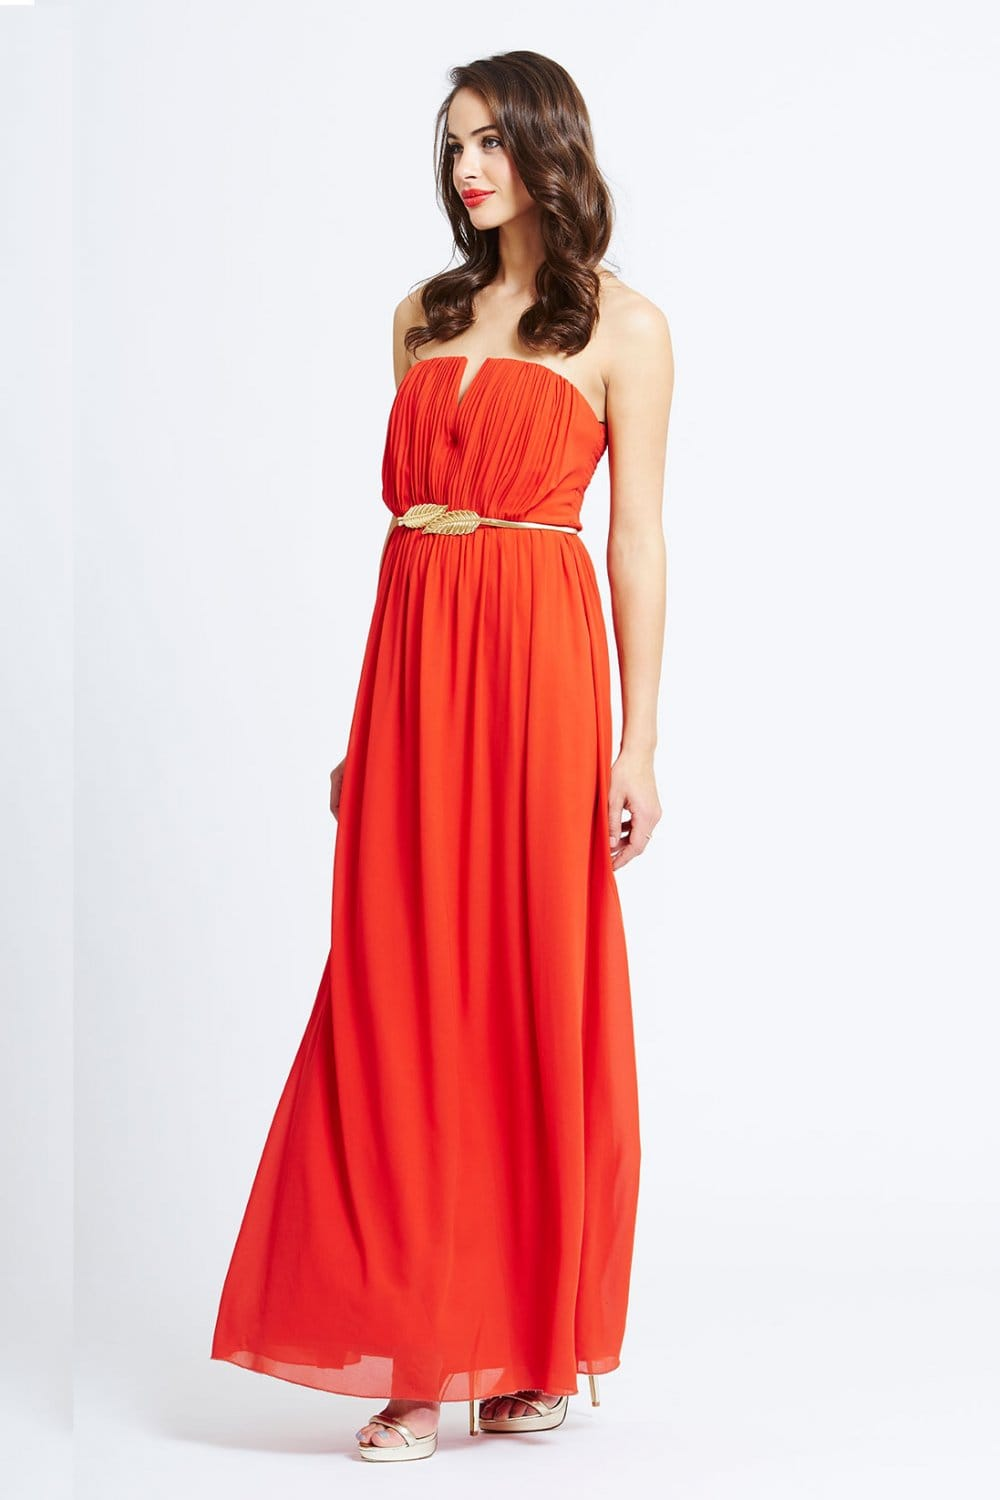 Find Orange chiffon dresses at ShopStyle. Shop the latest collection of Orange chiffon dresses from the most popular stores - all in one place.